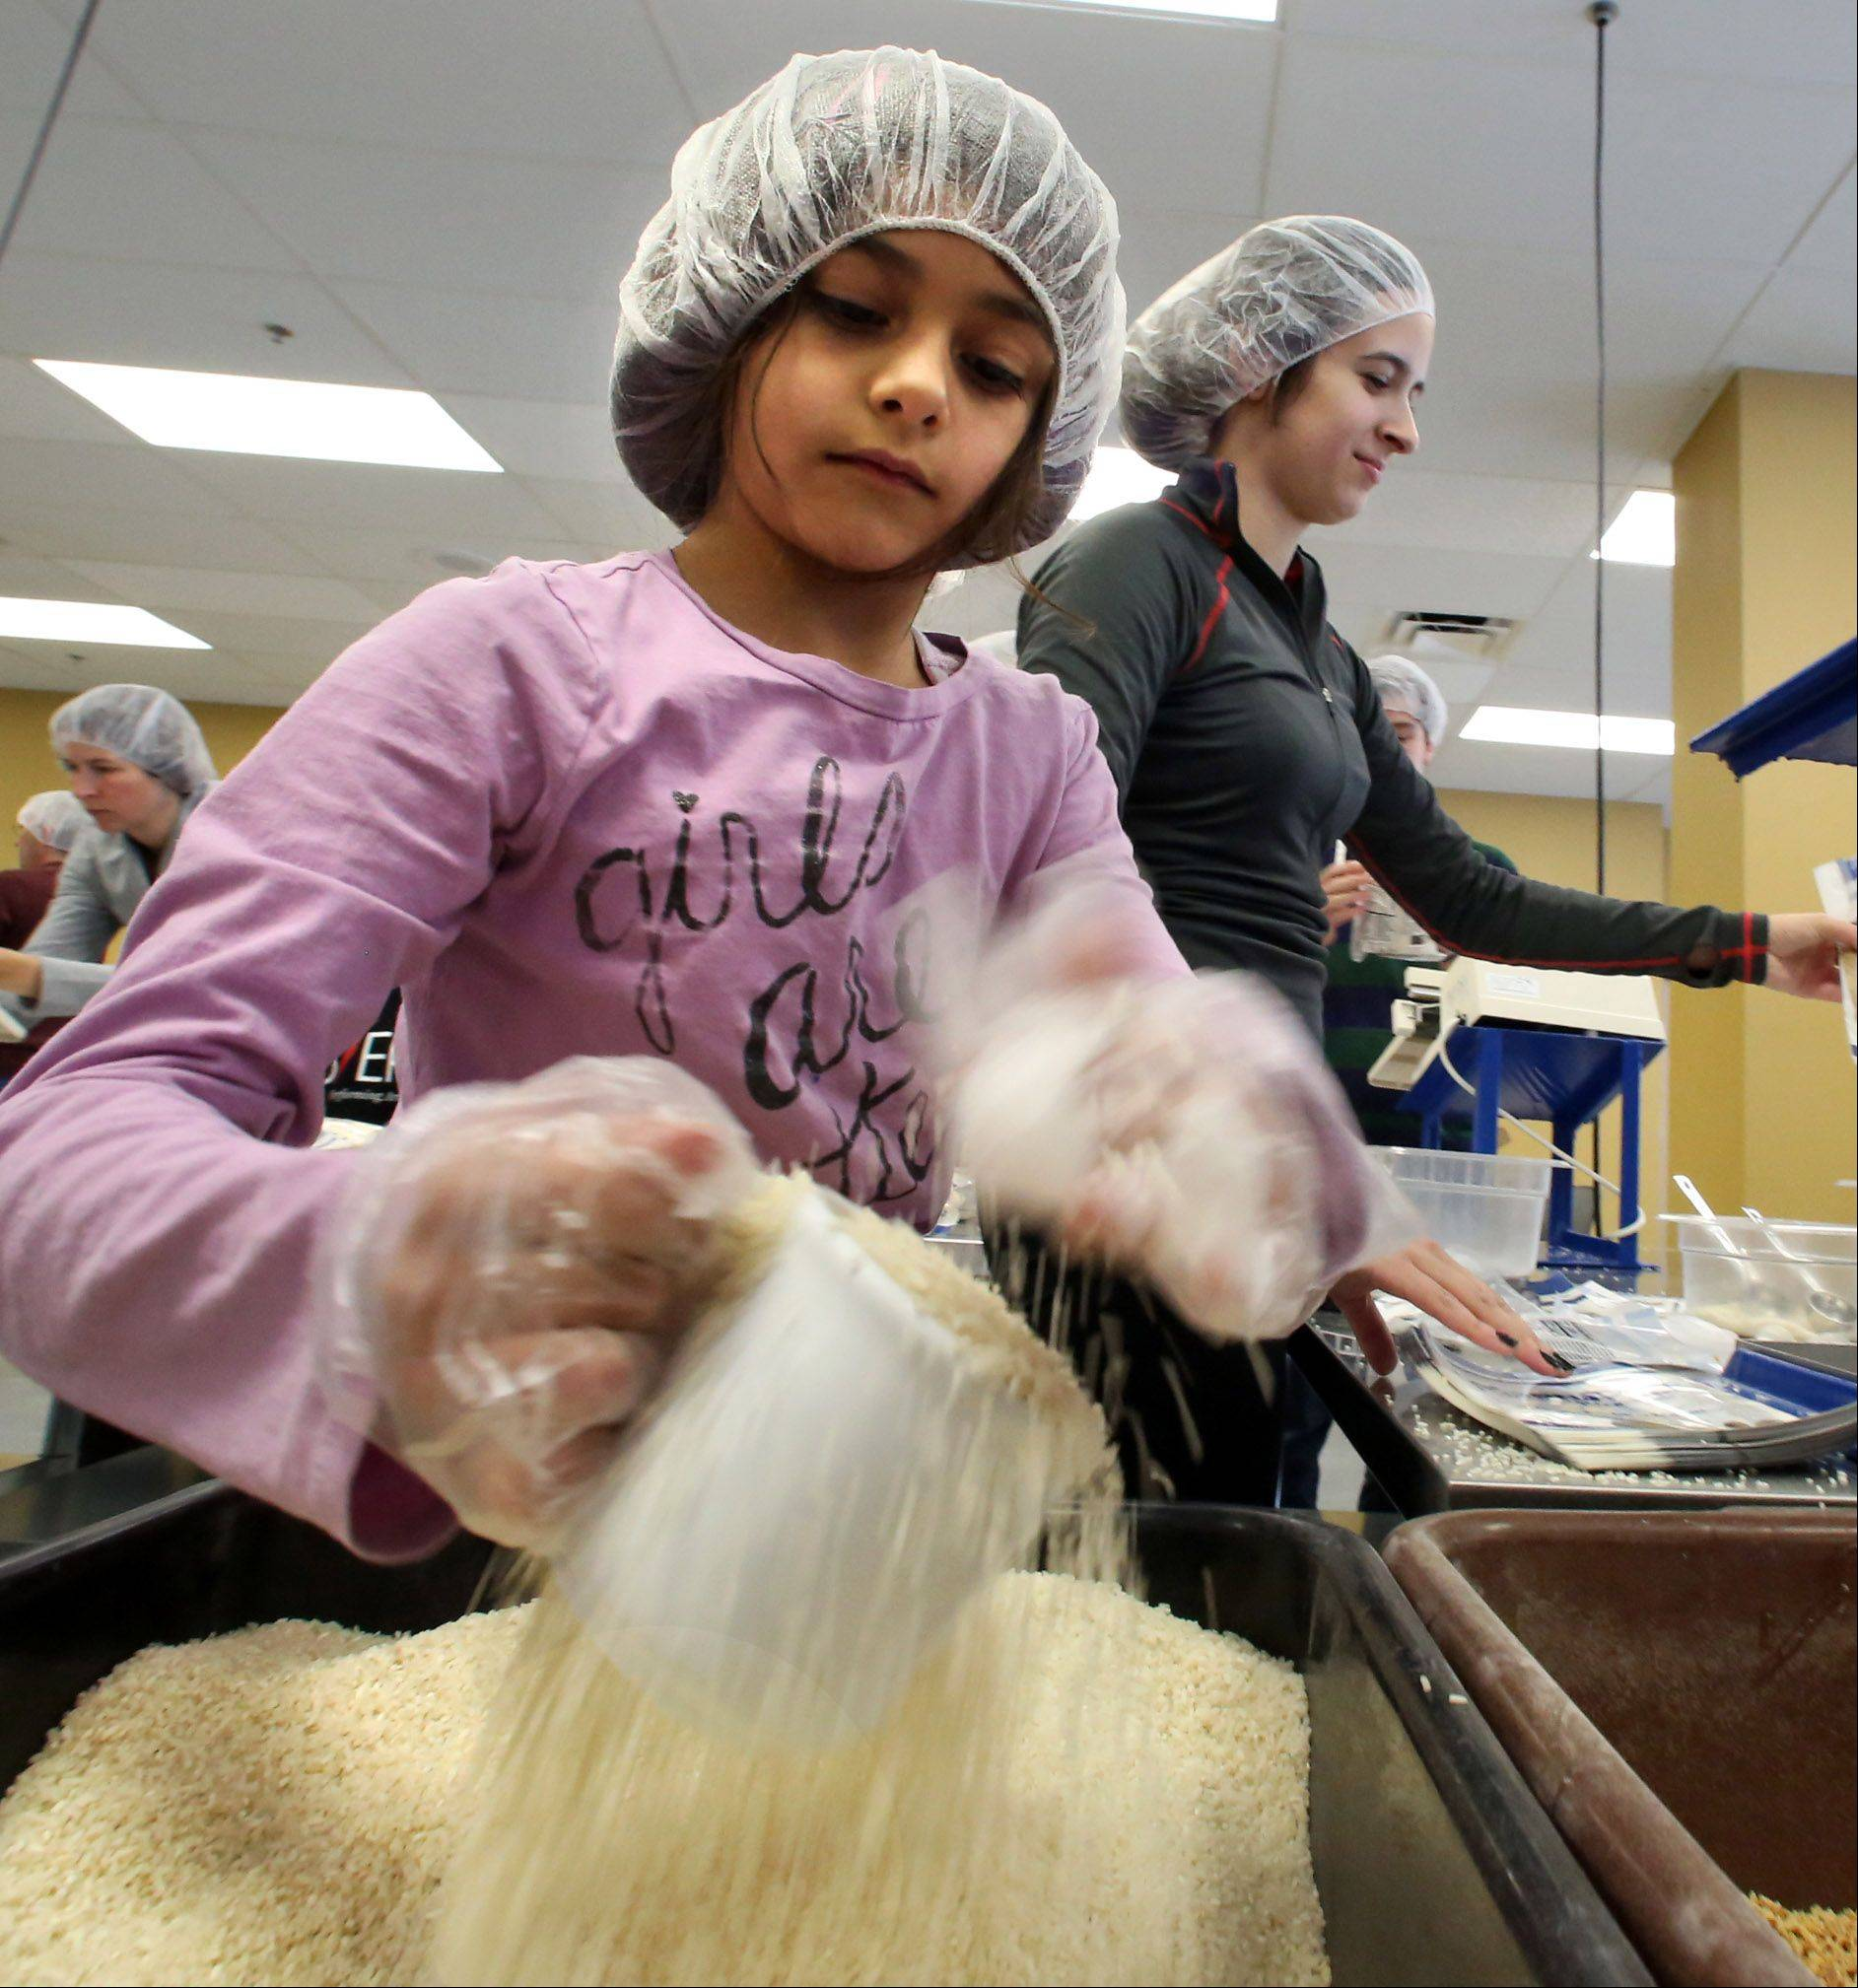 Seven-year-old Isabella Rodriguez scoops rice to pour into a meal packet, with Tesa Kubicek, both of Lake Forest, in background.